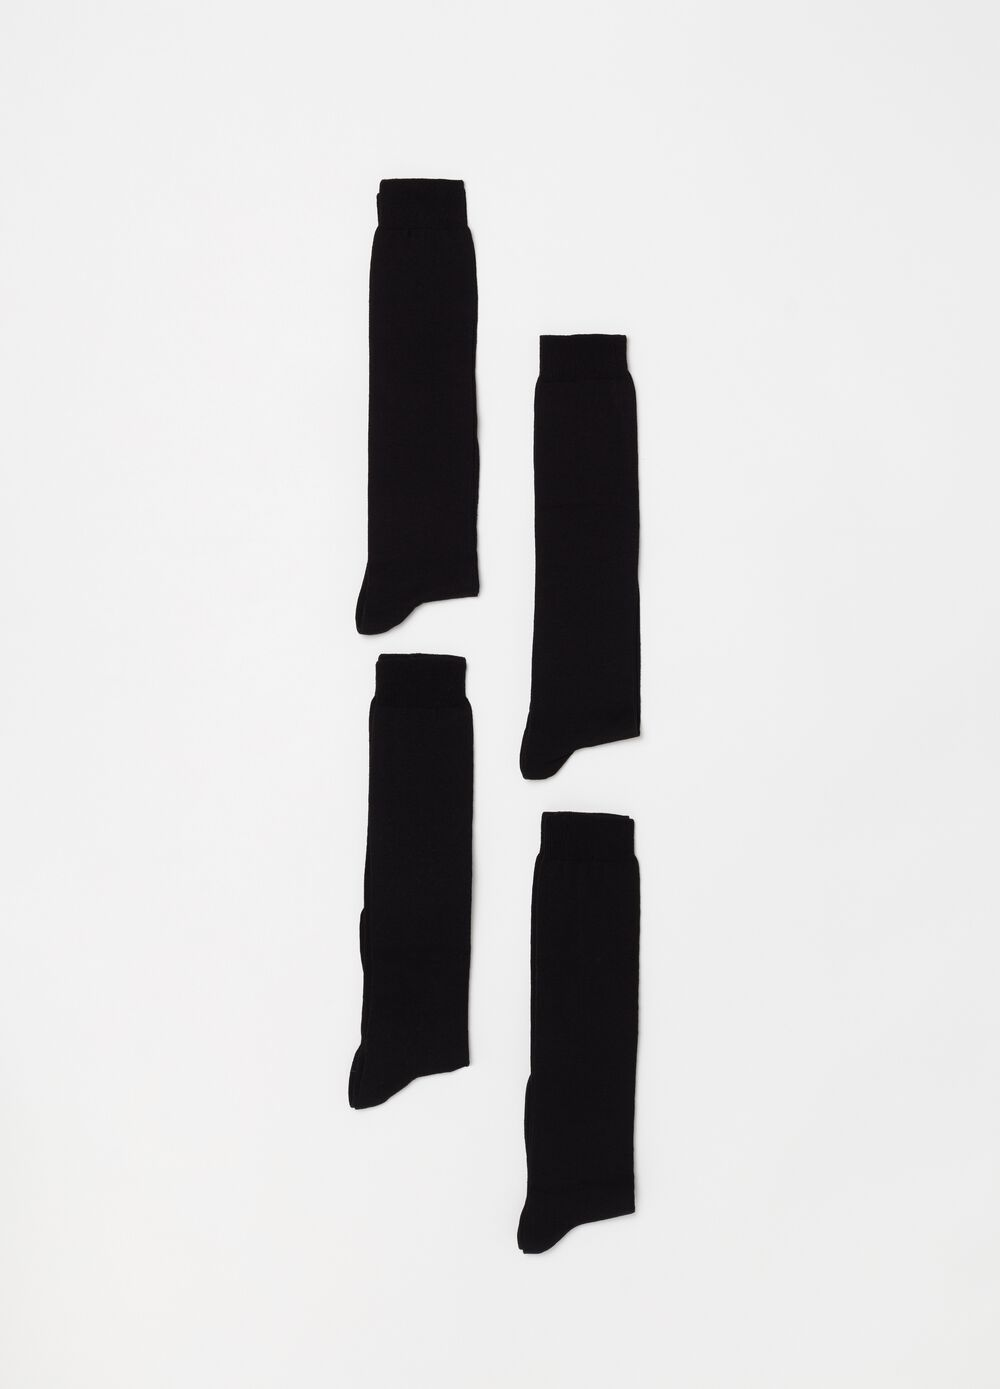 Four-pack long socks, made in Italy